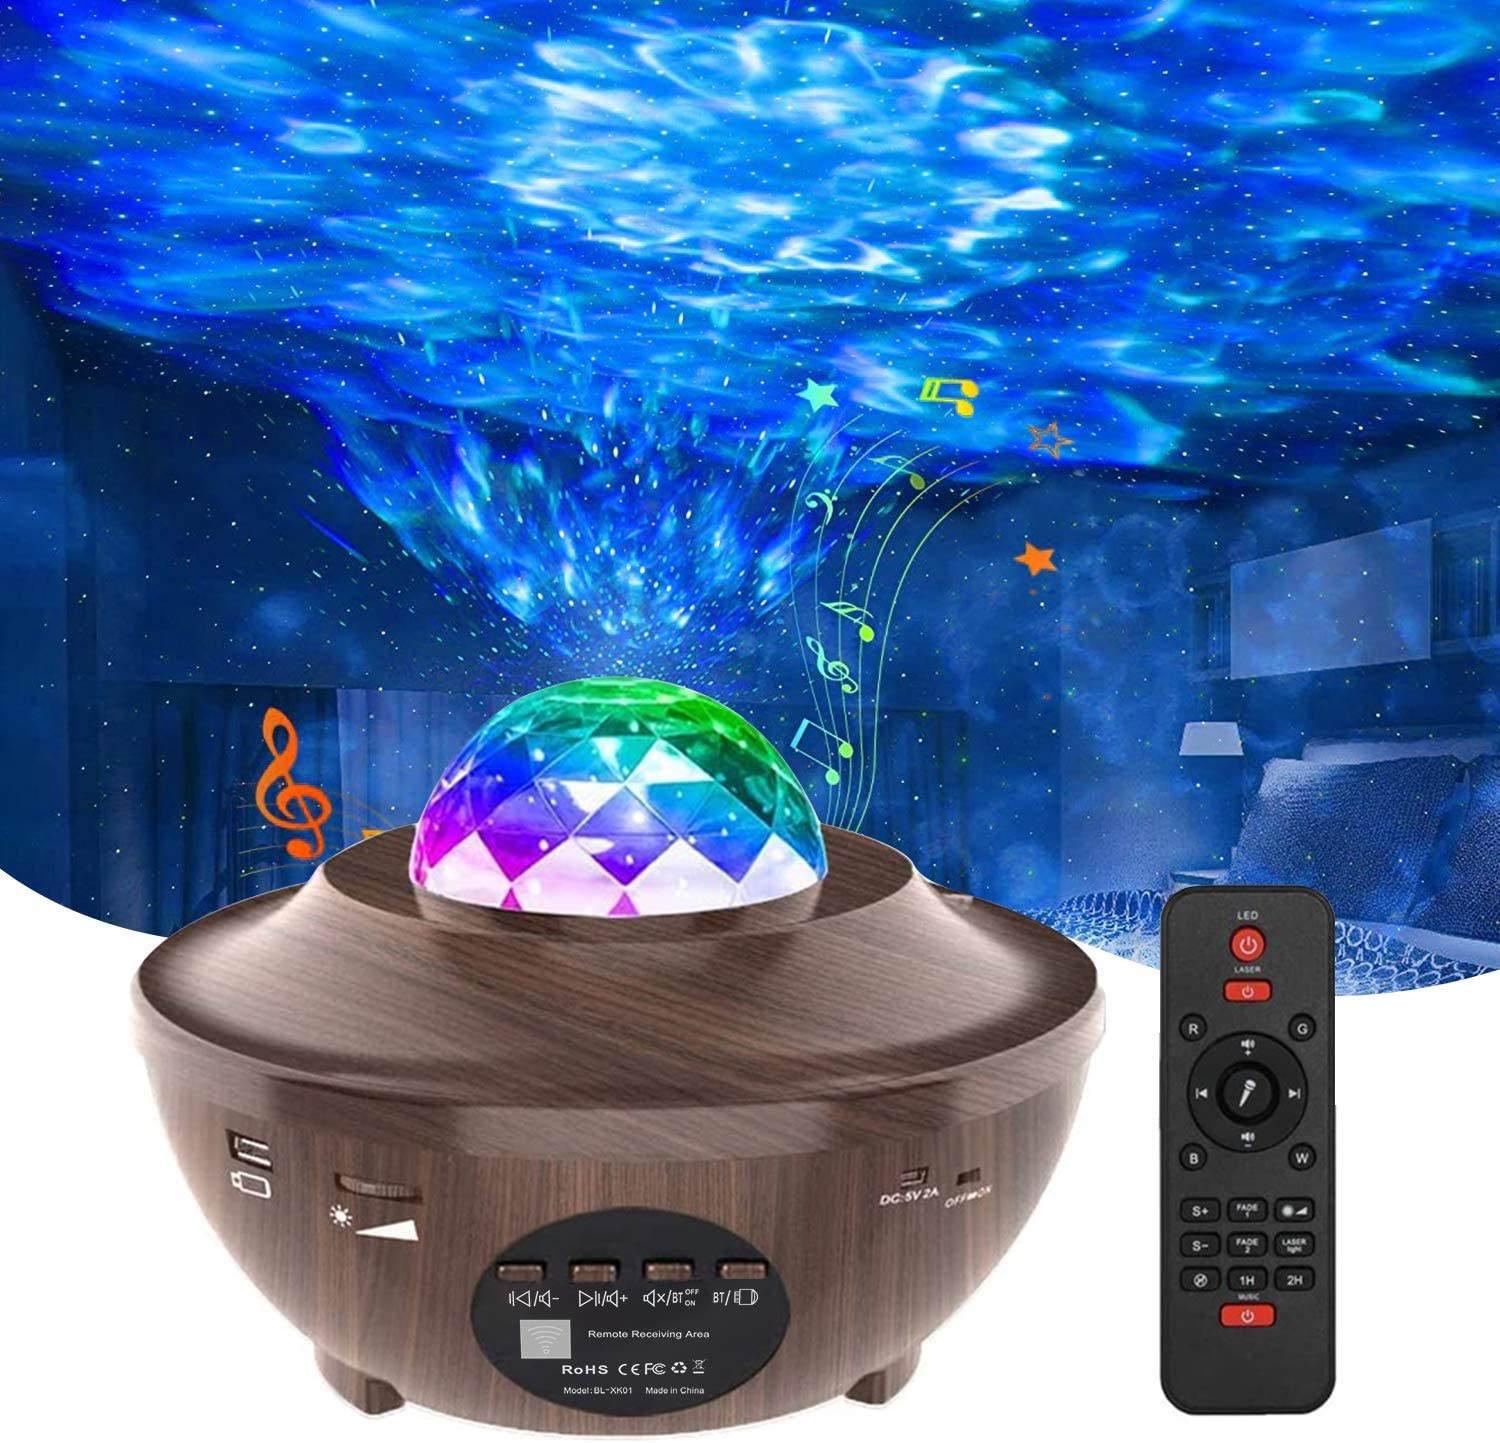 Sales Night security Light Projector for Star Homcasito Bedroom